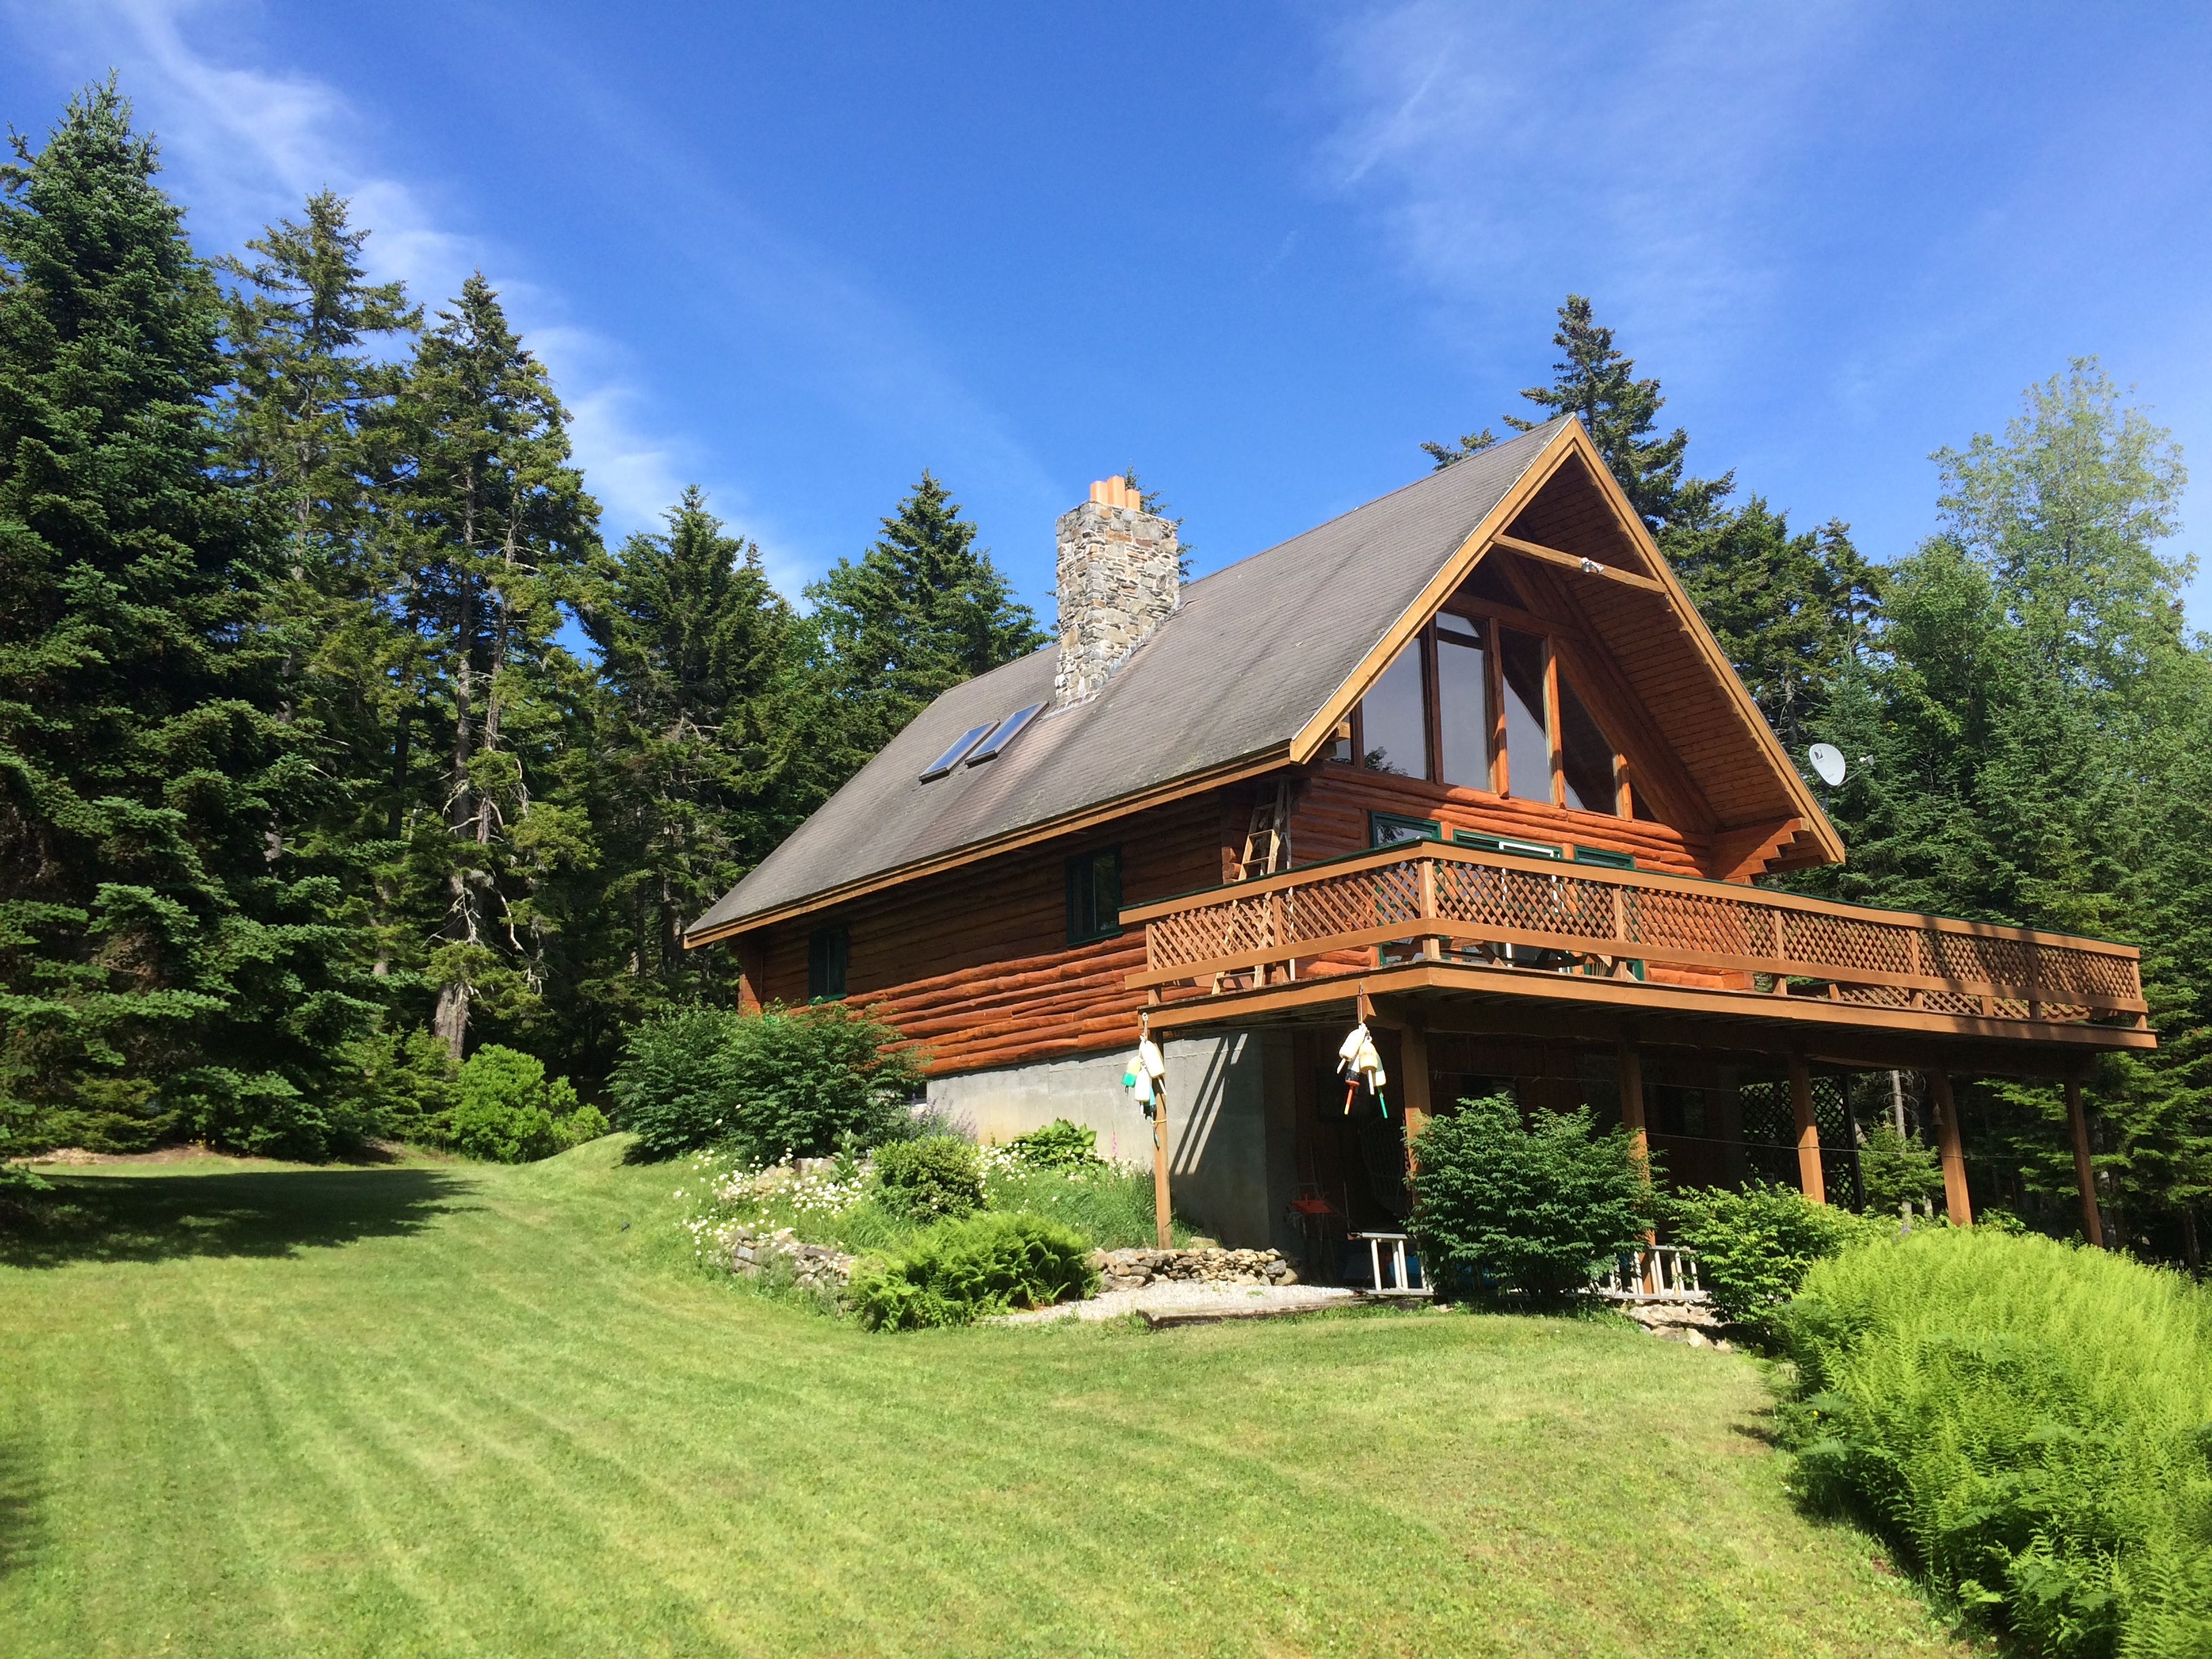 Single Family Home for Sale at Island Log Retreat 1101 Ellis Lane Islesboro, Maine 04848 United States